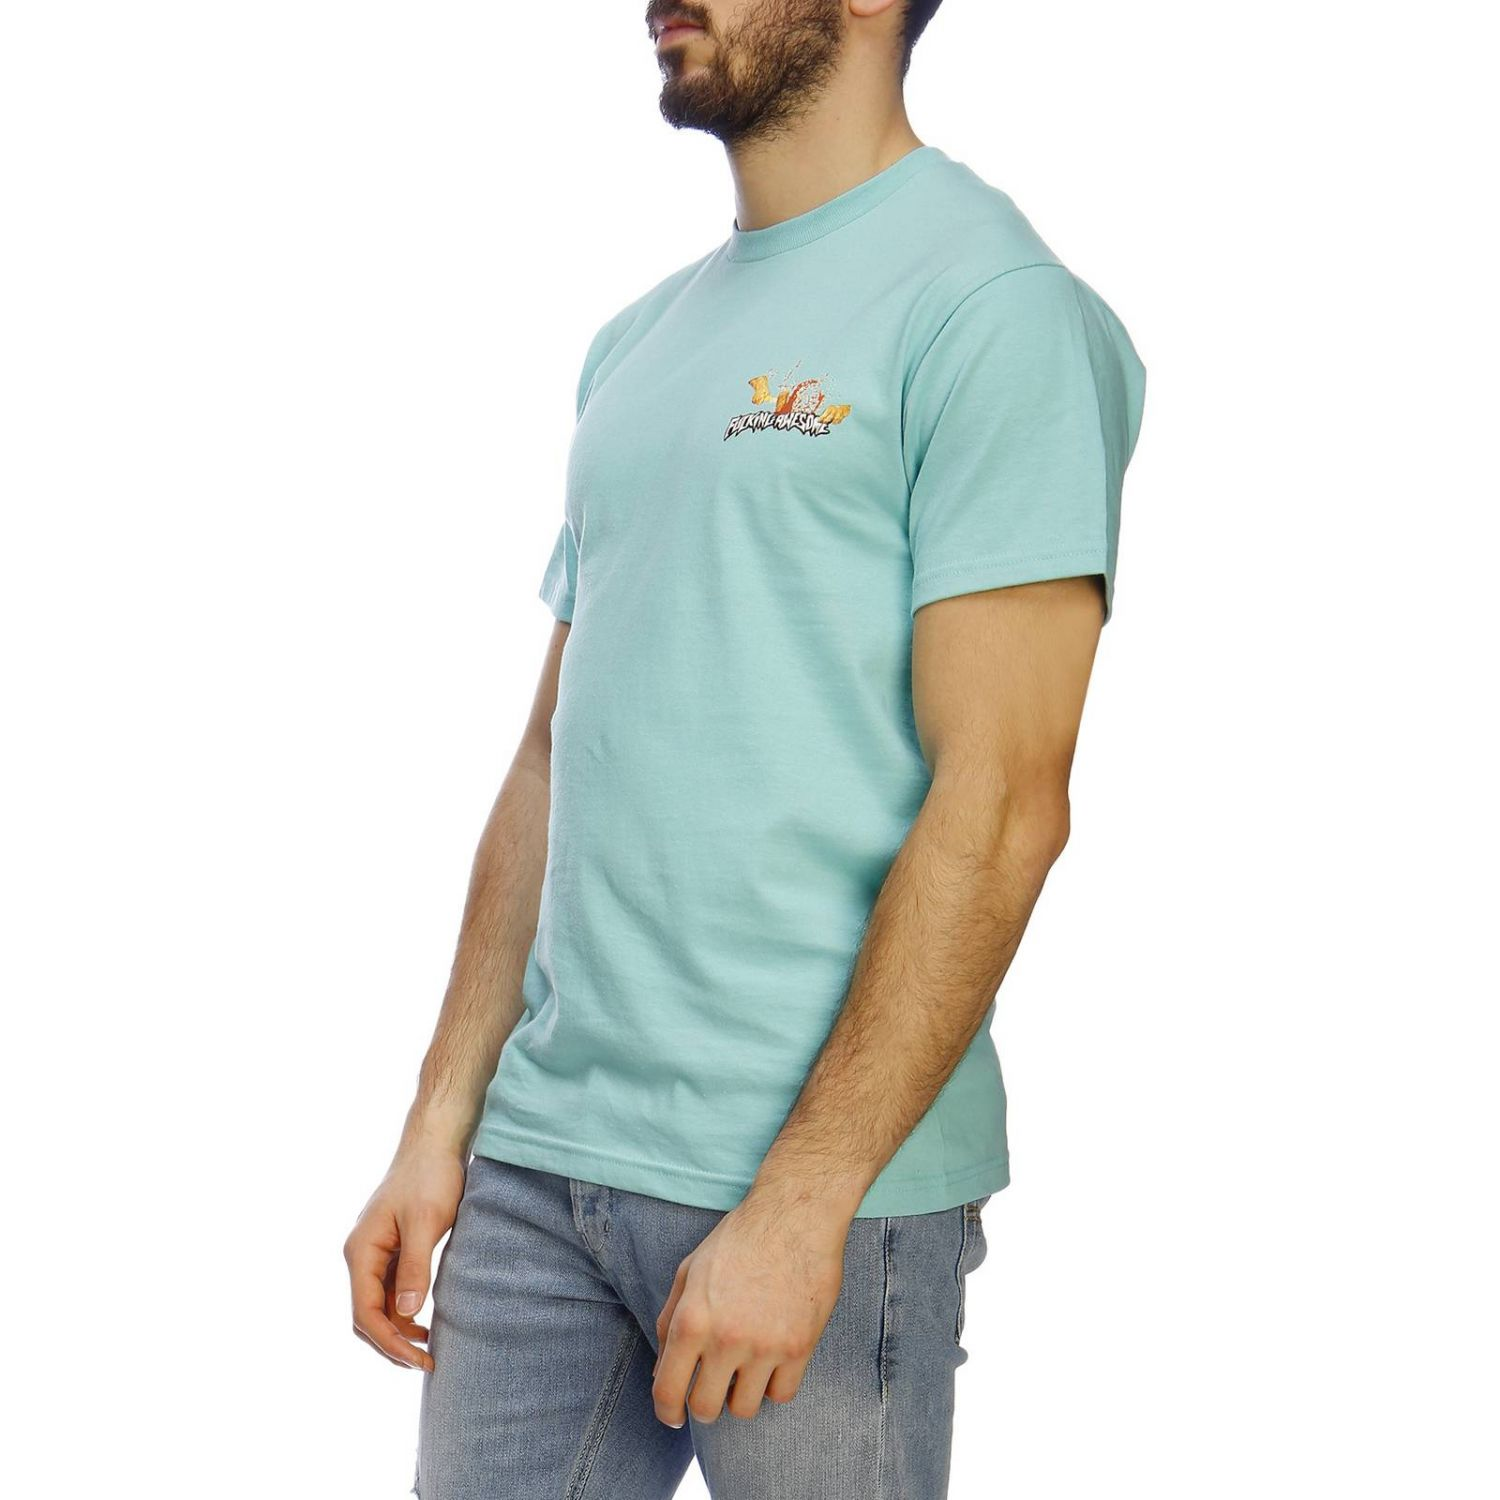 Camiseta hombre Fucking Awesome menta 2